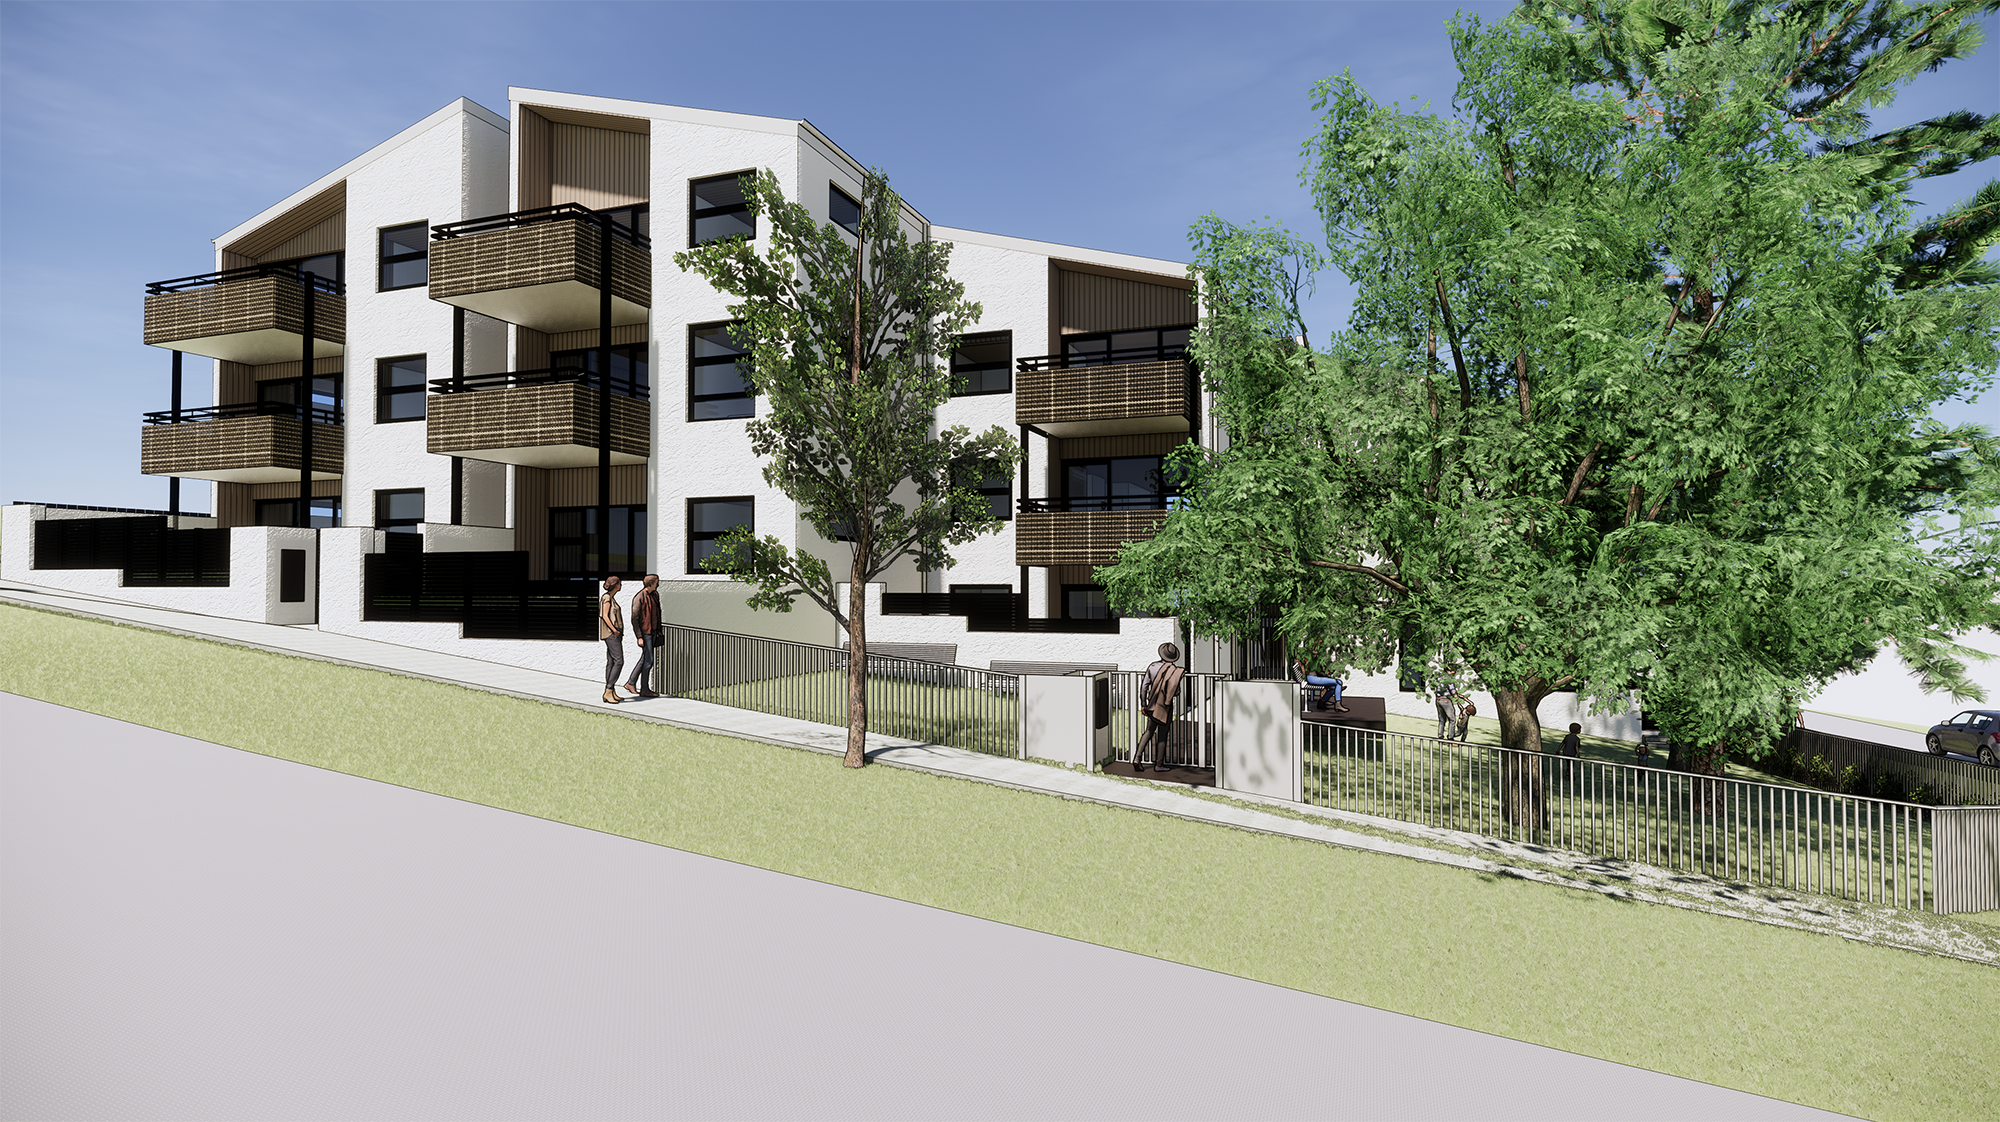 Sudeley Street Render 1